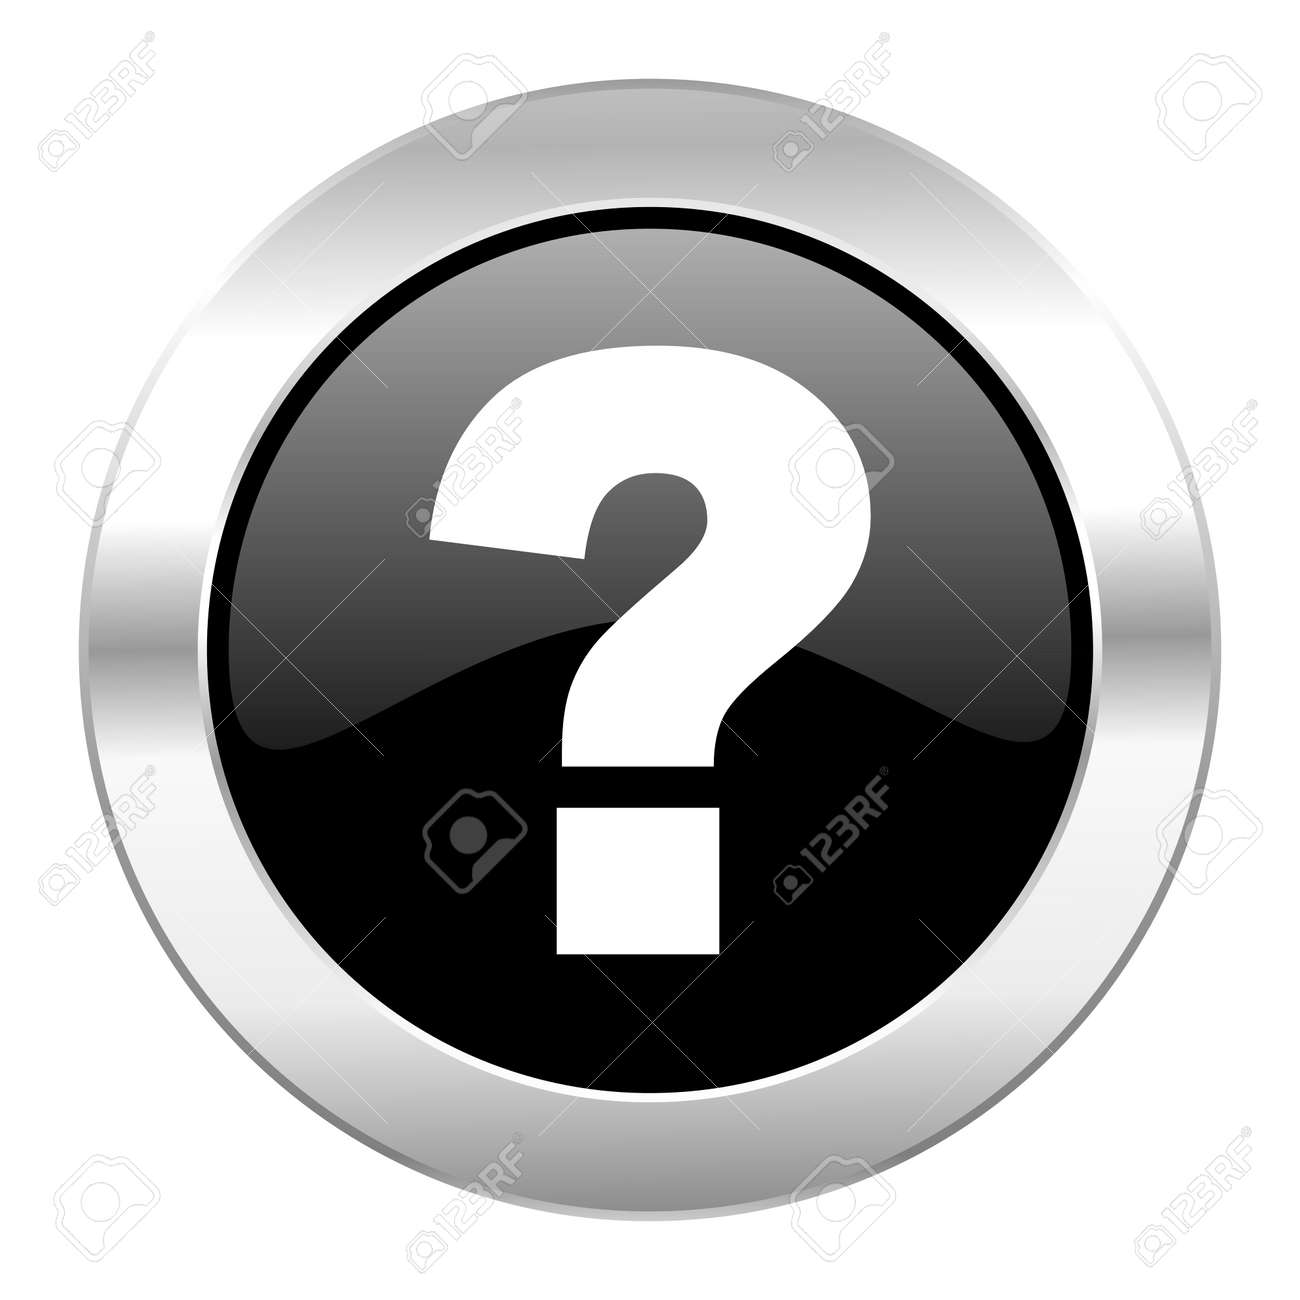 Question Mark Black Circle Glossy Chrome Icon Isolated Stock Photo ...